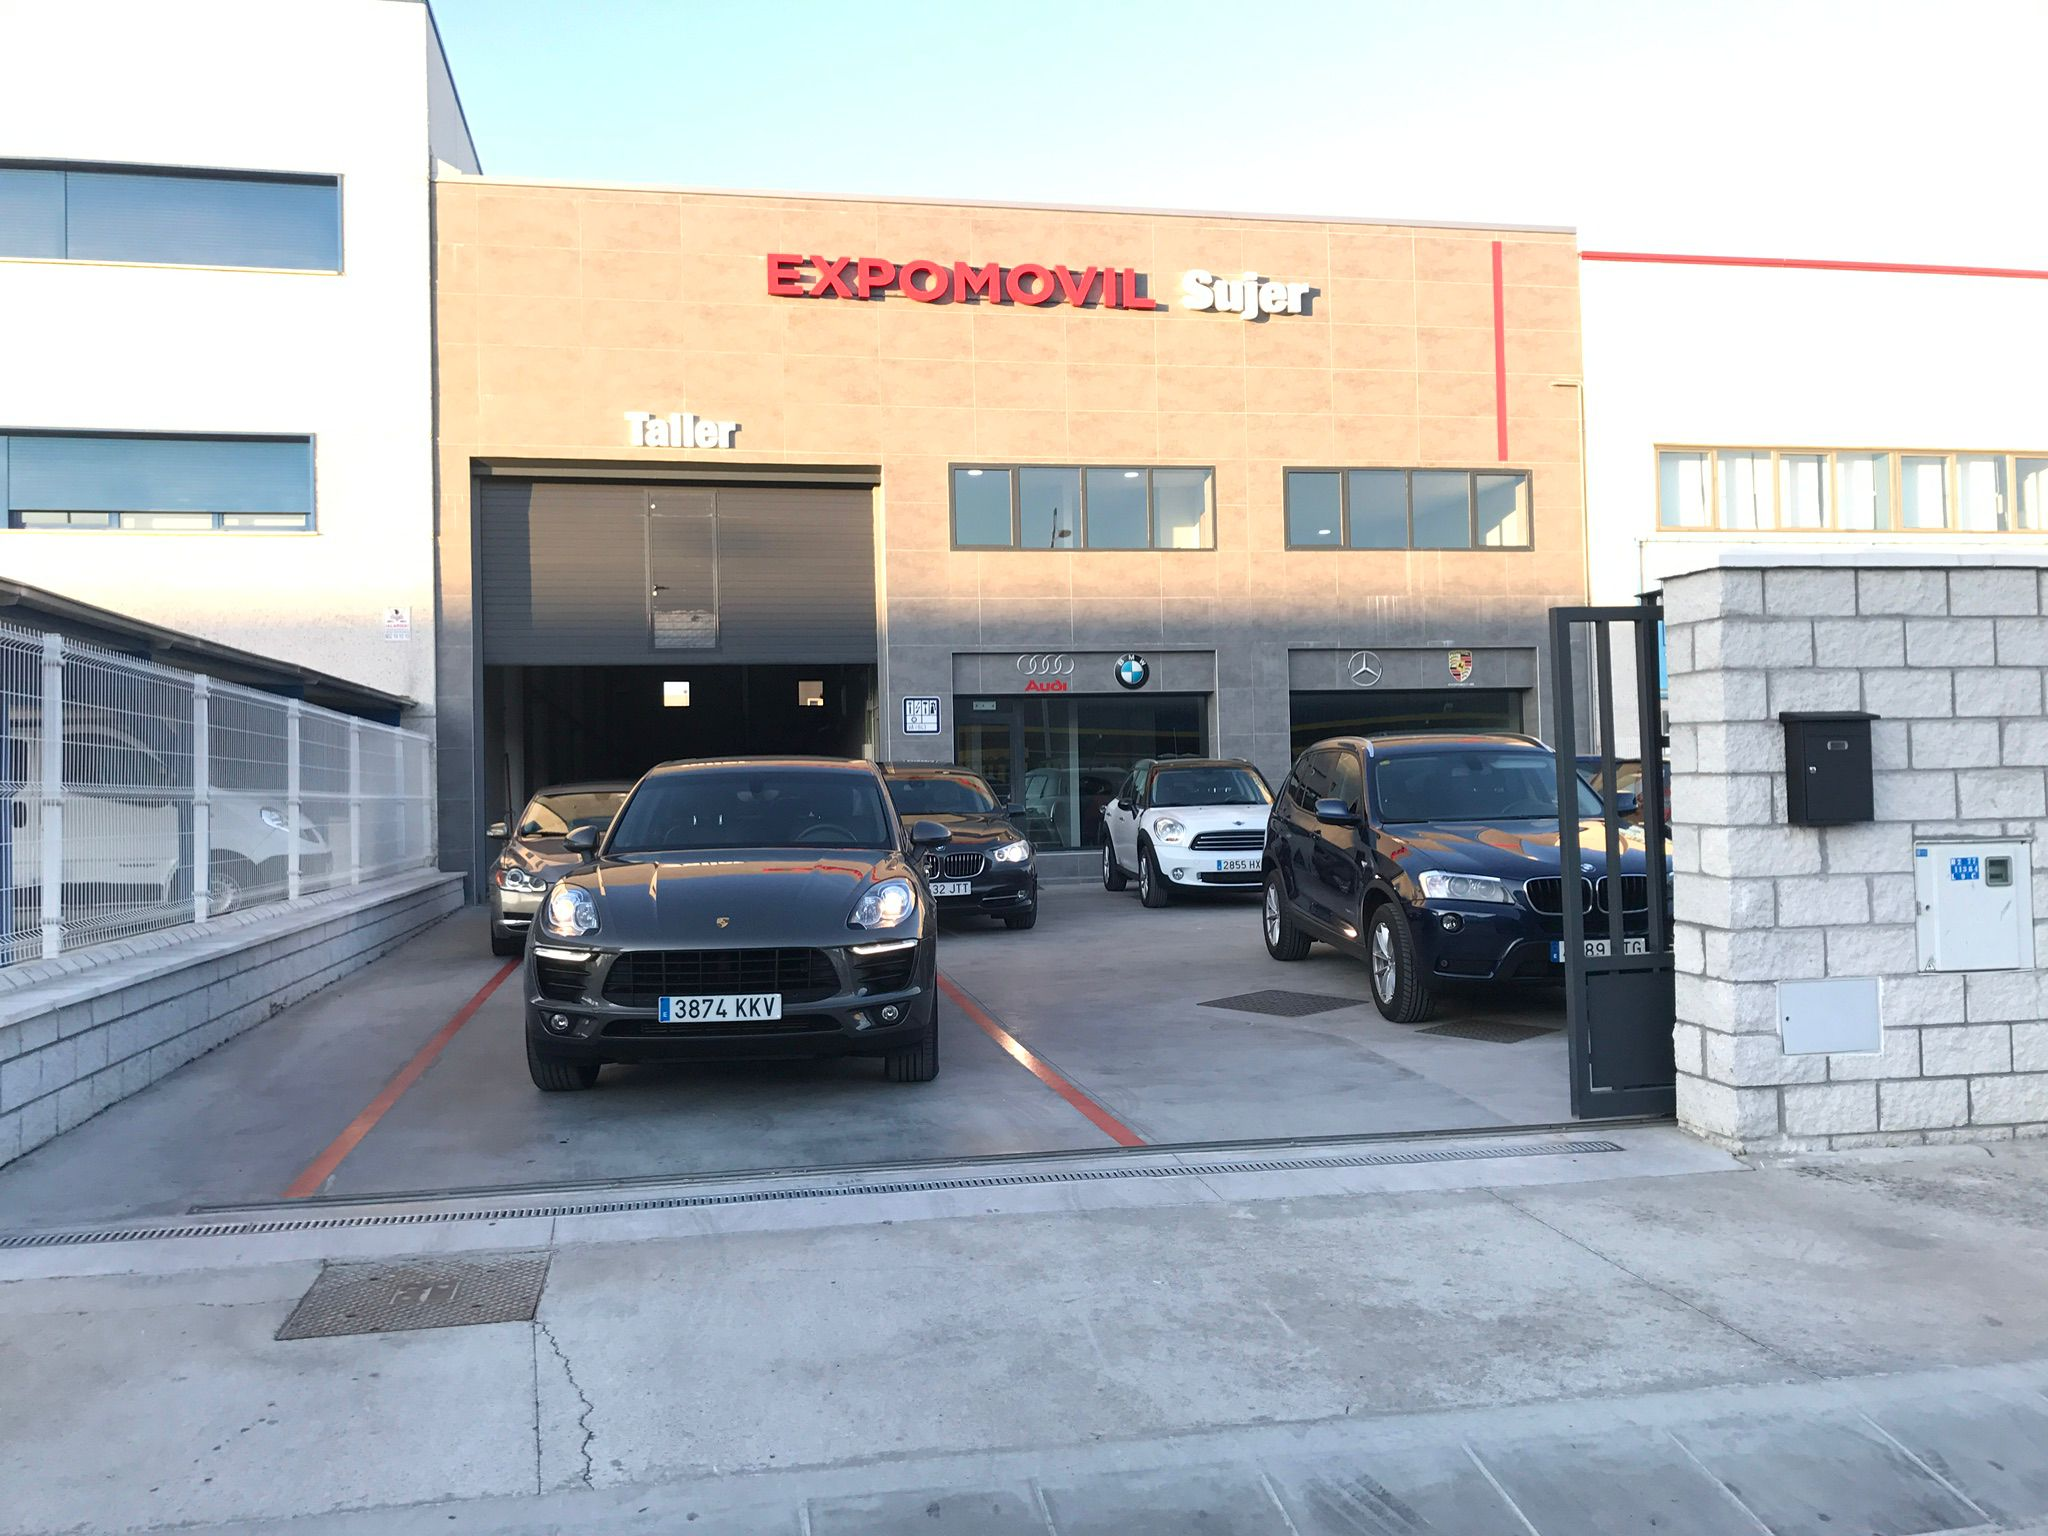 taller de coches-valladolid-expomovilsujer